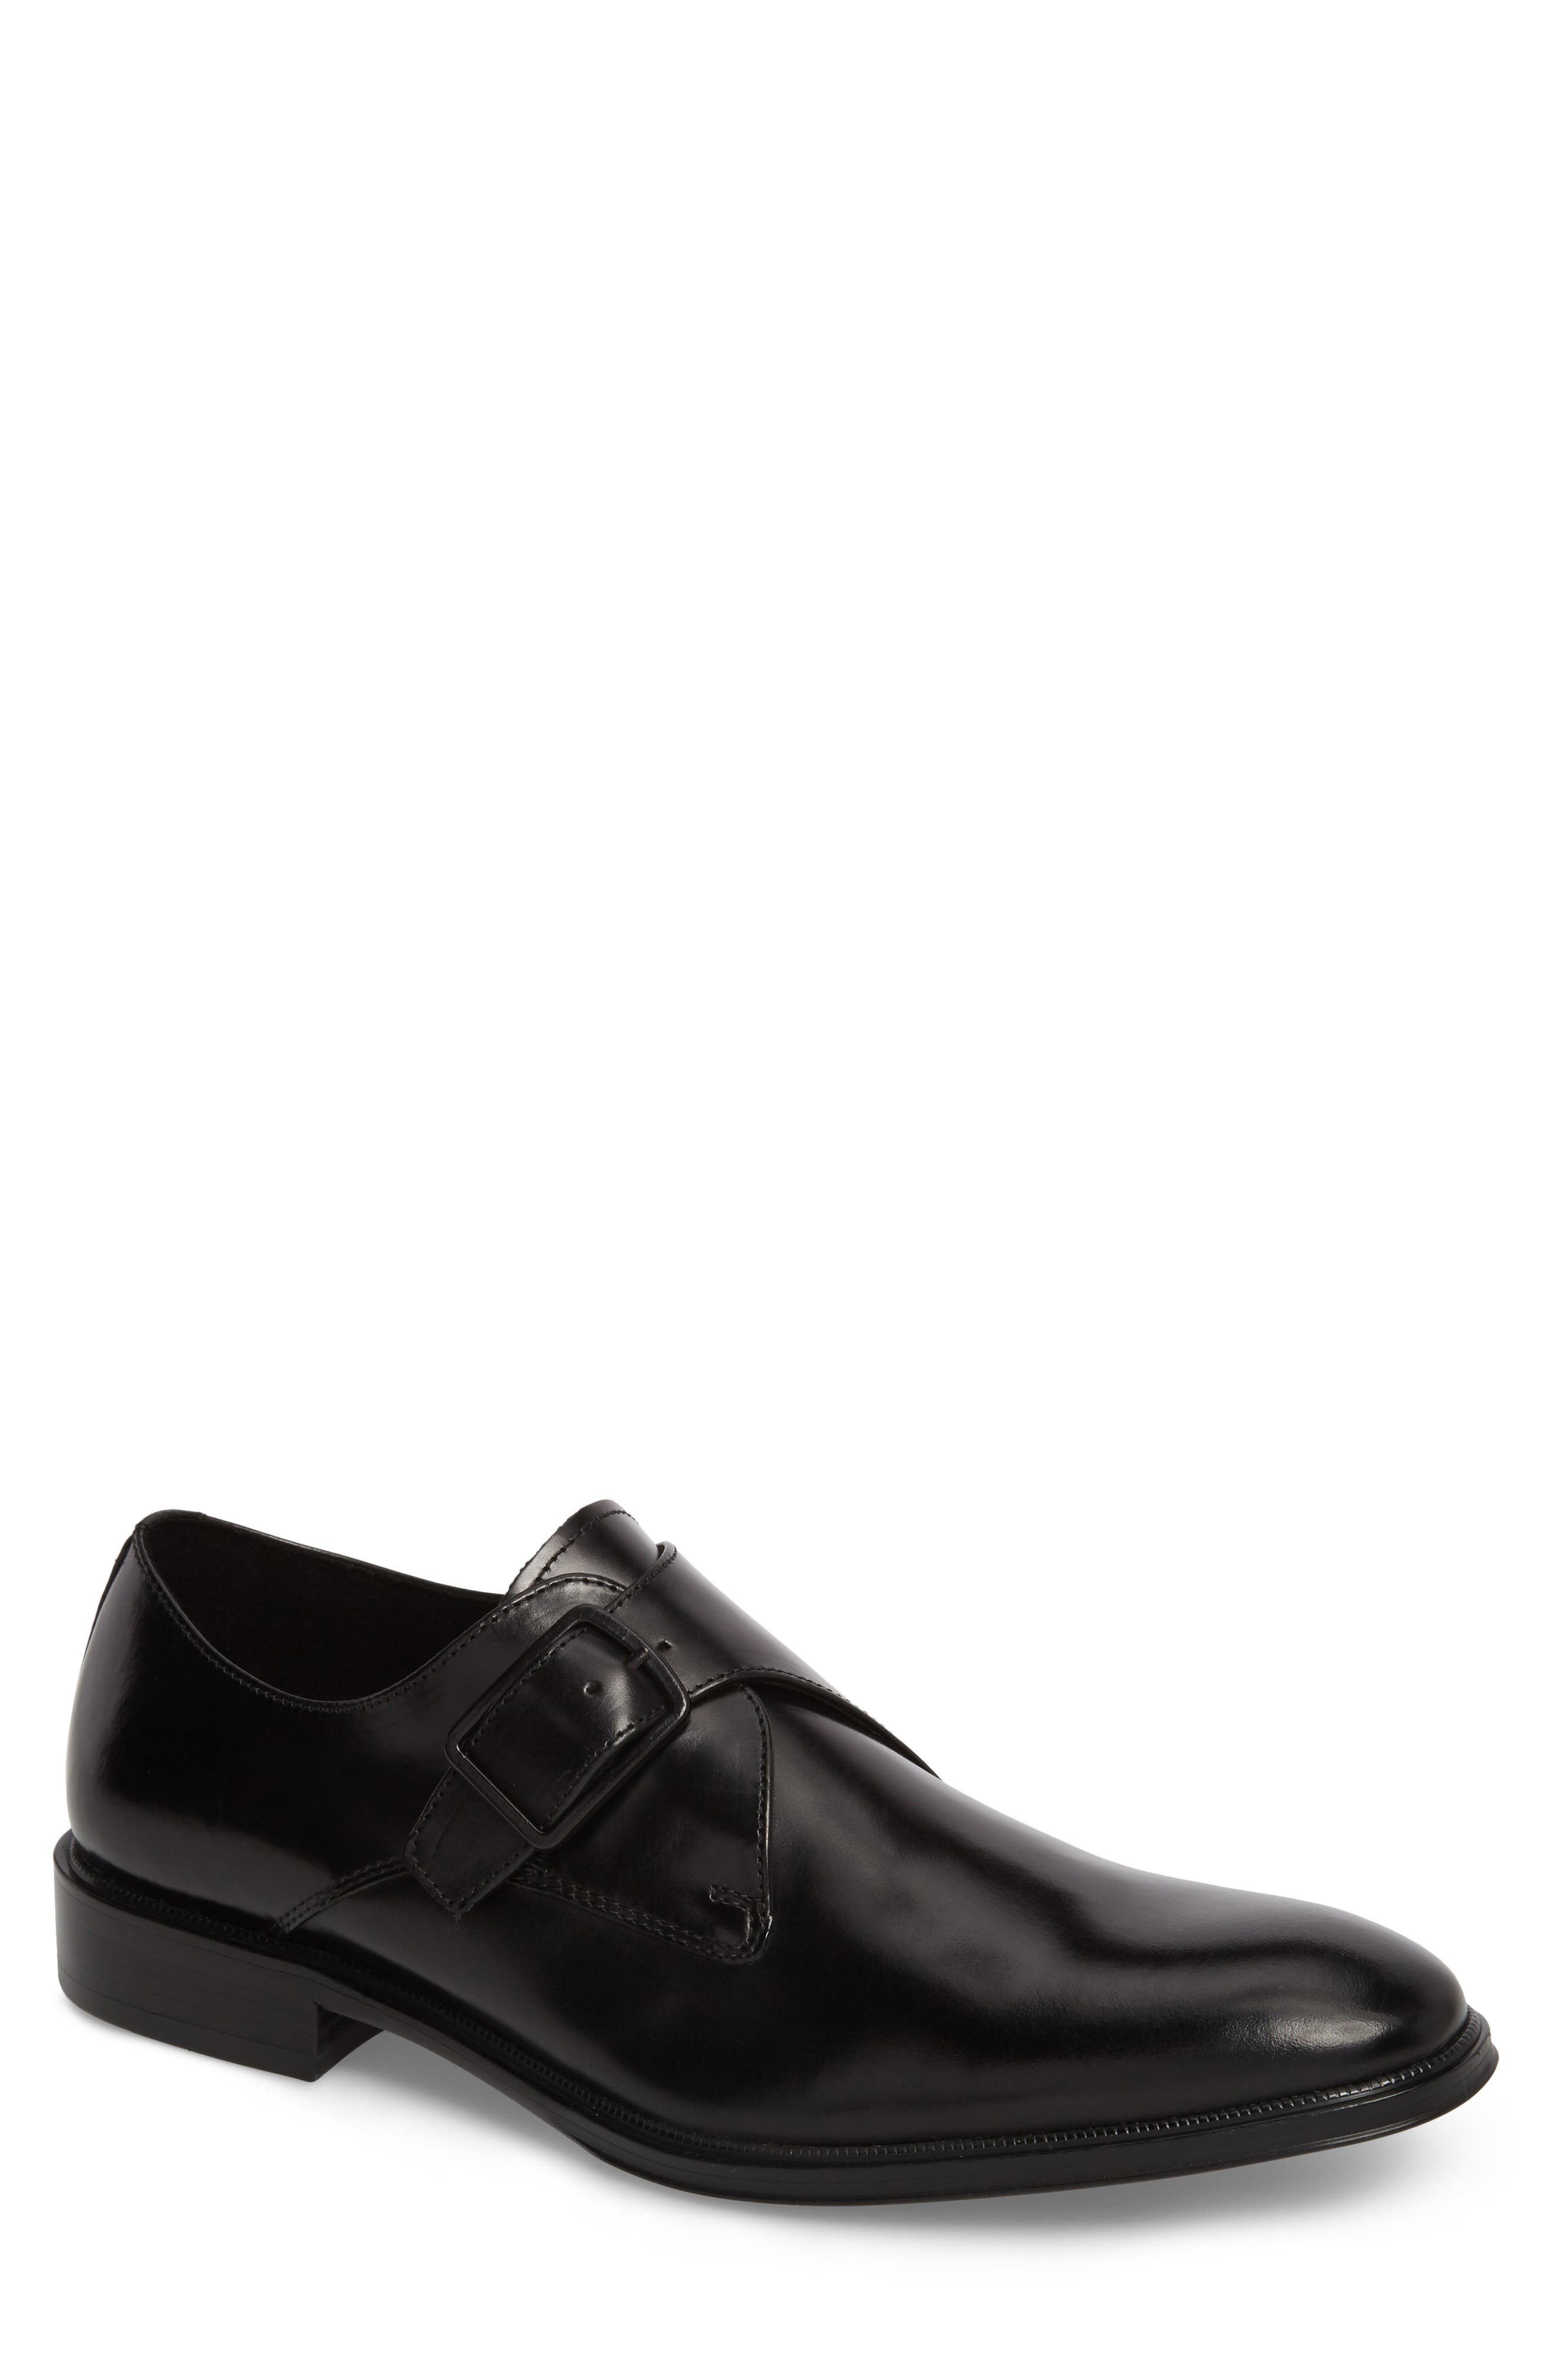 Tully Single Buckle Monk Shoe,                         Main,                         color, Black Leather